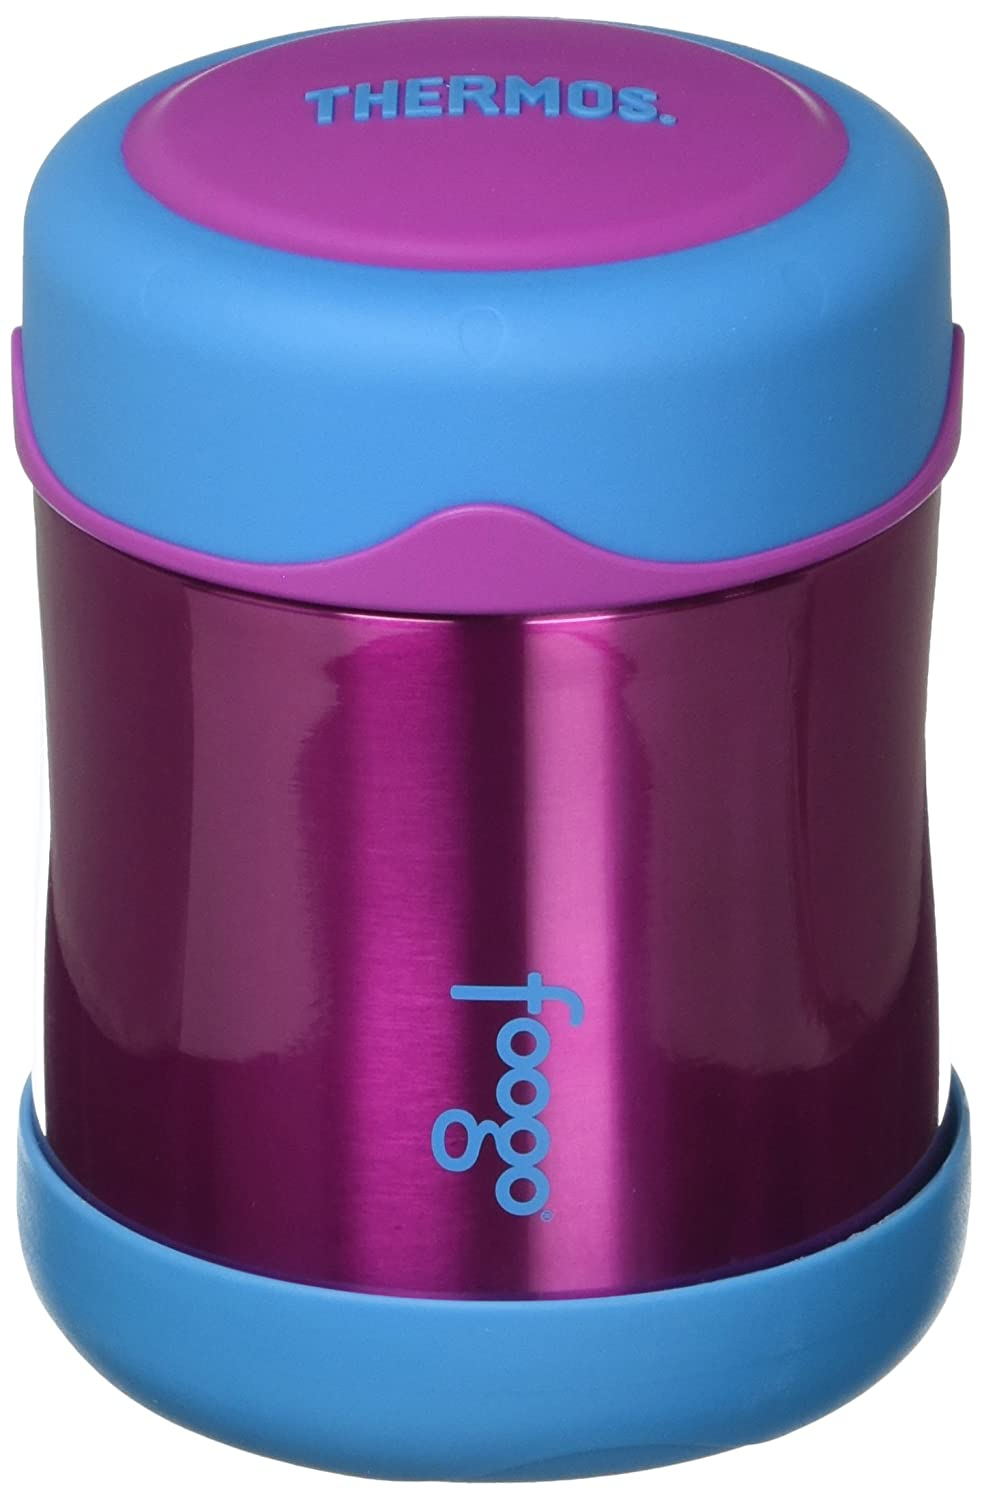 THERMOS FOOGO Vacuum Insulated Stainless Steel 10-Ounce Food Jar, Aubergine/Blue Thermos L.L.C B3007AC2